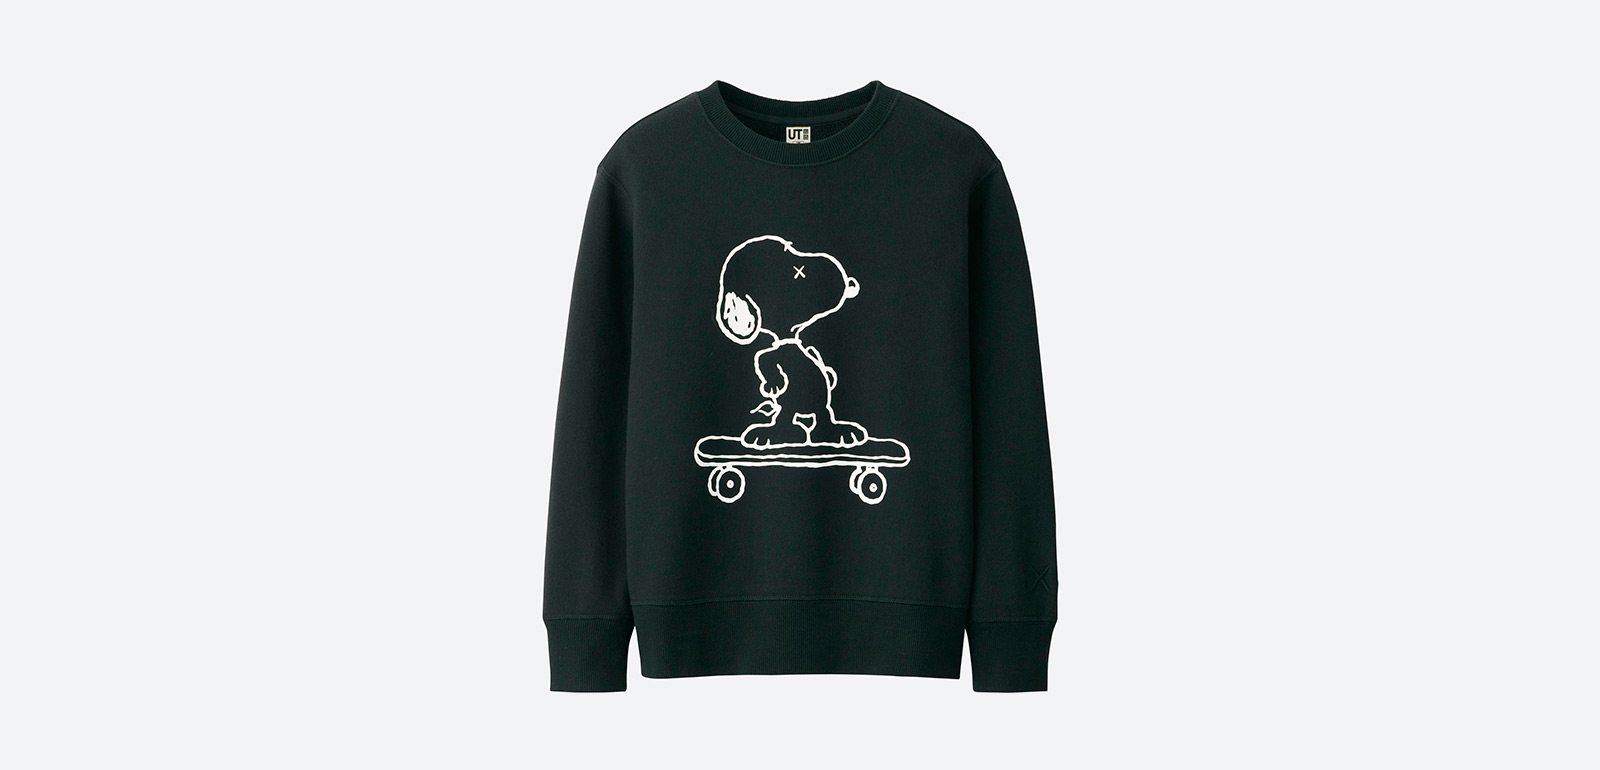 f801345da00189 Uniqlo KAWS x Peanuts 2017 Collection - IMBOLDN